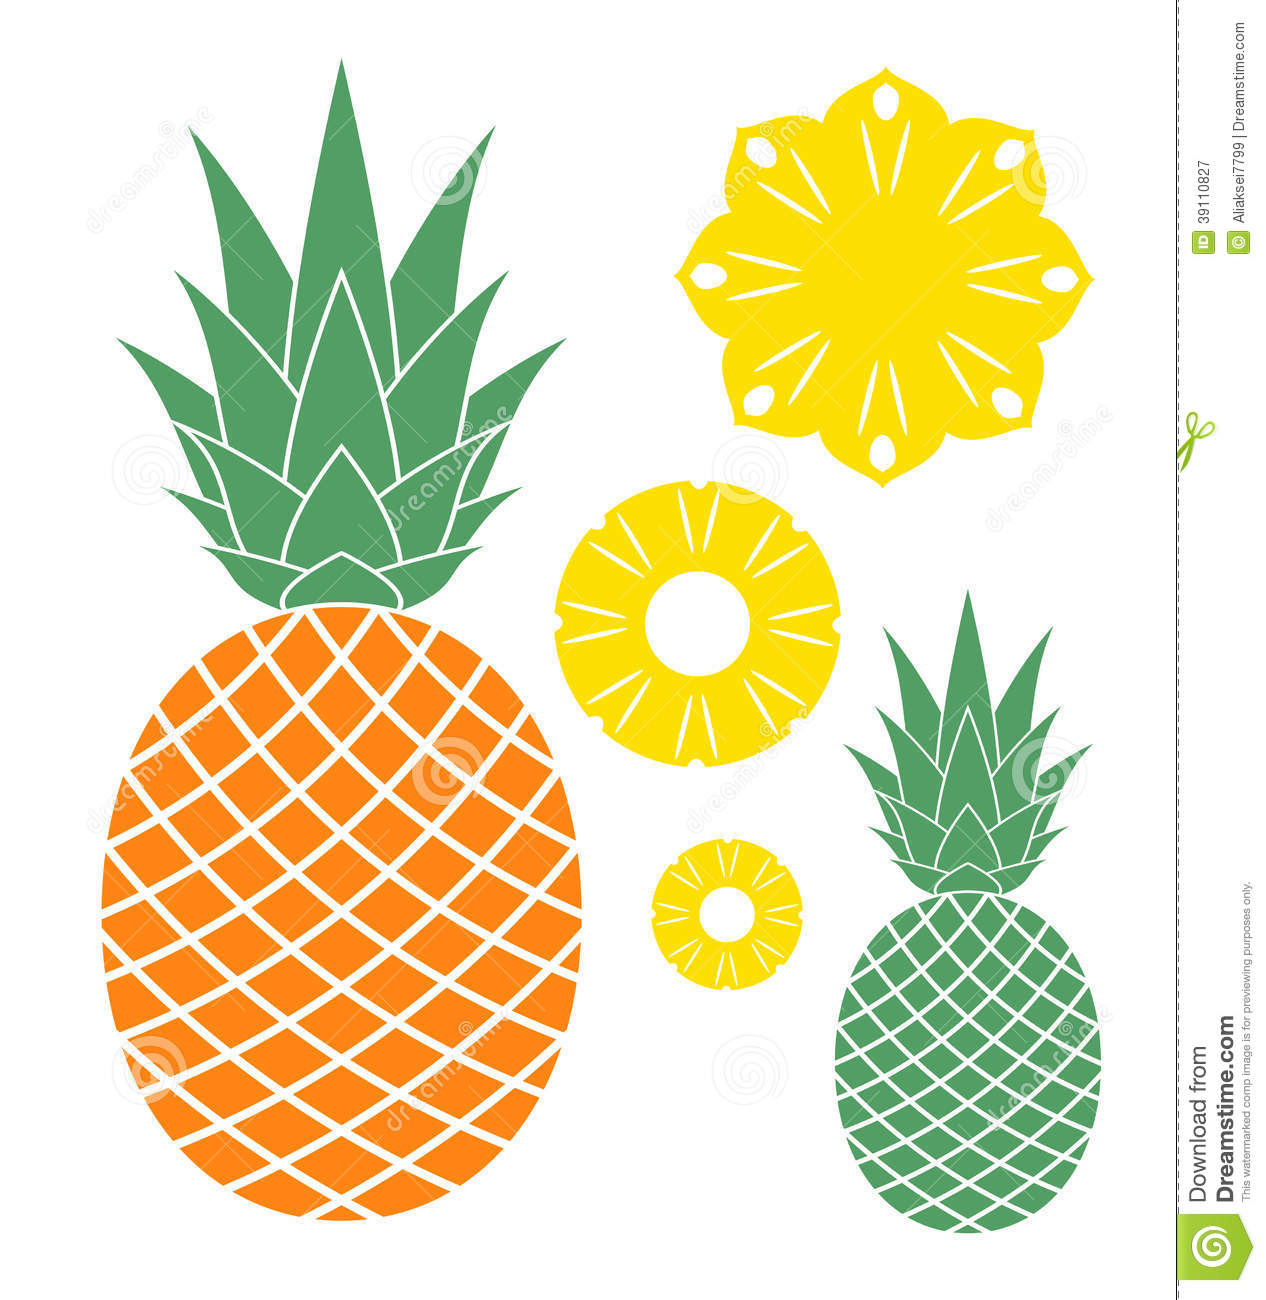 15 Pineapple Vector Black Images - Pineapple Die Cut Vinyl ...